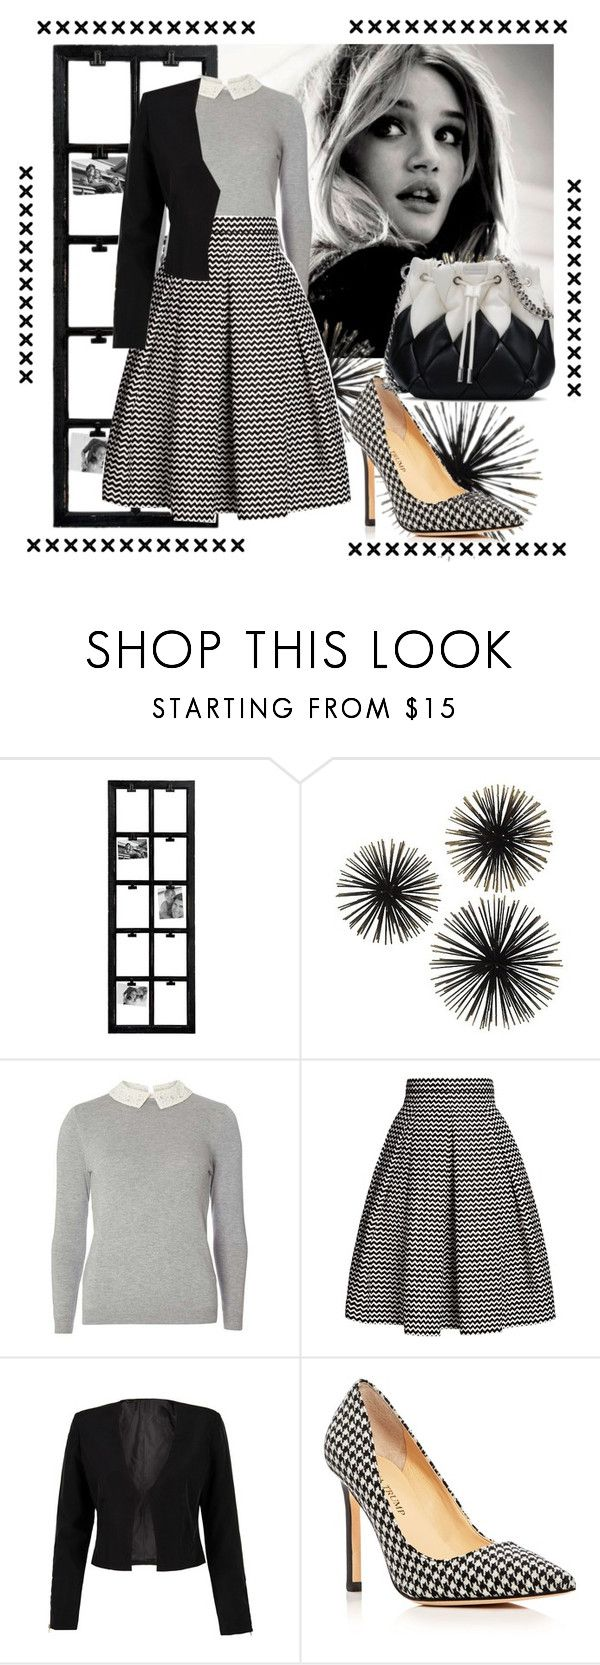 """BLACK & WHITE COMBINATION !"" by jasmine-monro ❤ liked on Polyvore featuring Dorothy Perkins, Rumour London, WithChic, Ivanka Trump and STELLA McCARTNEY"